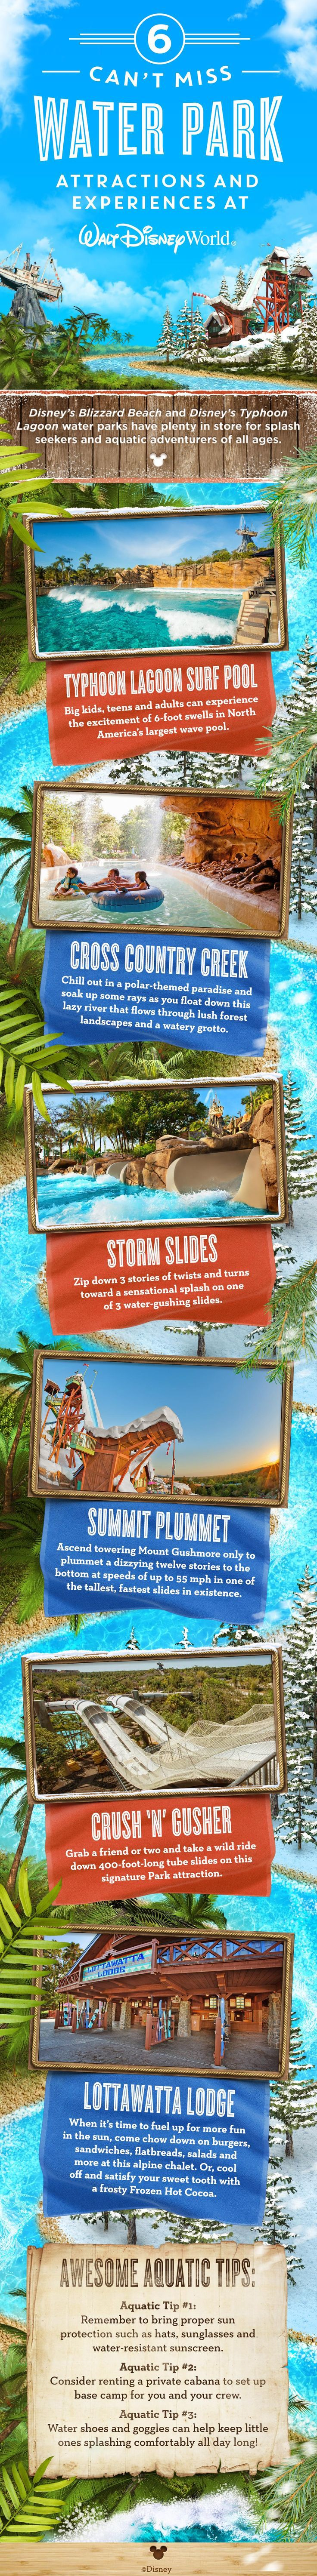 Discover why no Walt Disney World family vacation is complete without a visit to Disney's Typhoon Lagoon and Disney's Blizzard Beach! From serene to extreme, there's an experience for everyone. For our Top 10 Summer Disney World tips, see: http://www.buildabettermousetrip.com/disney-world-summer-tips